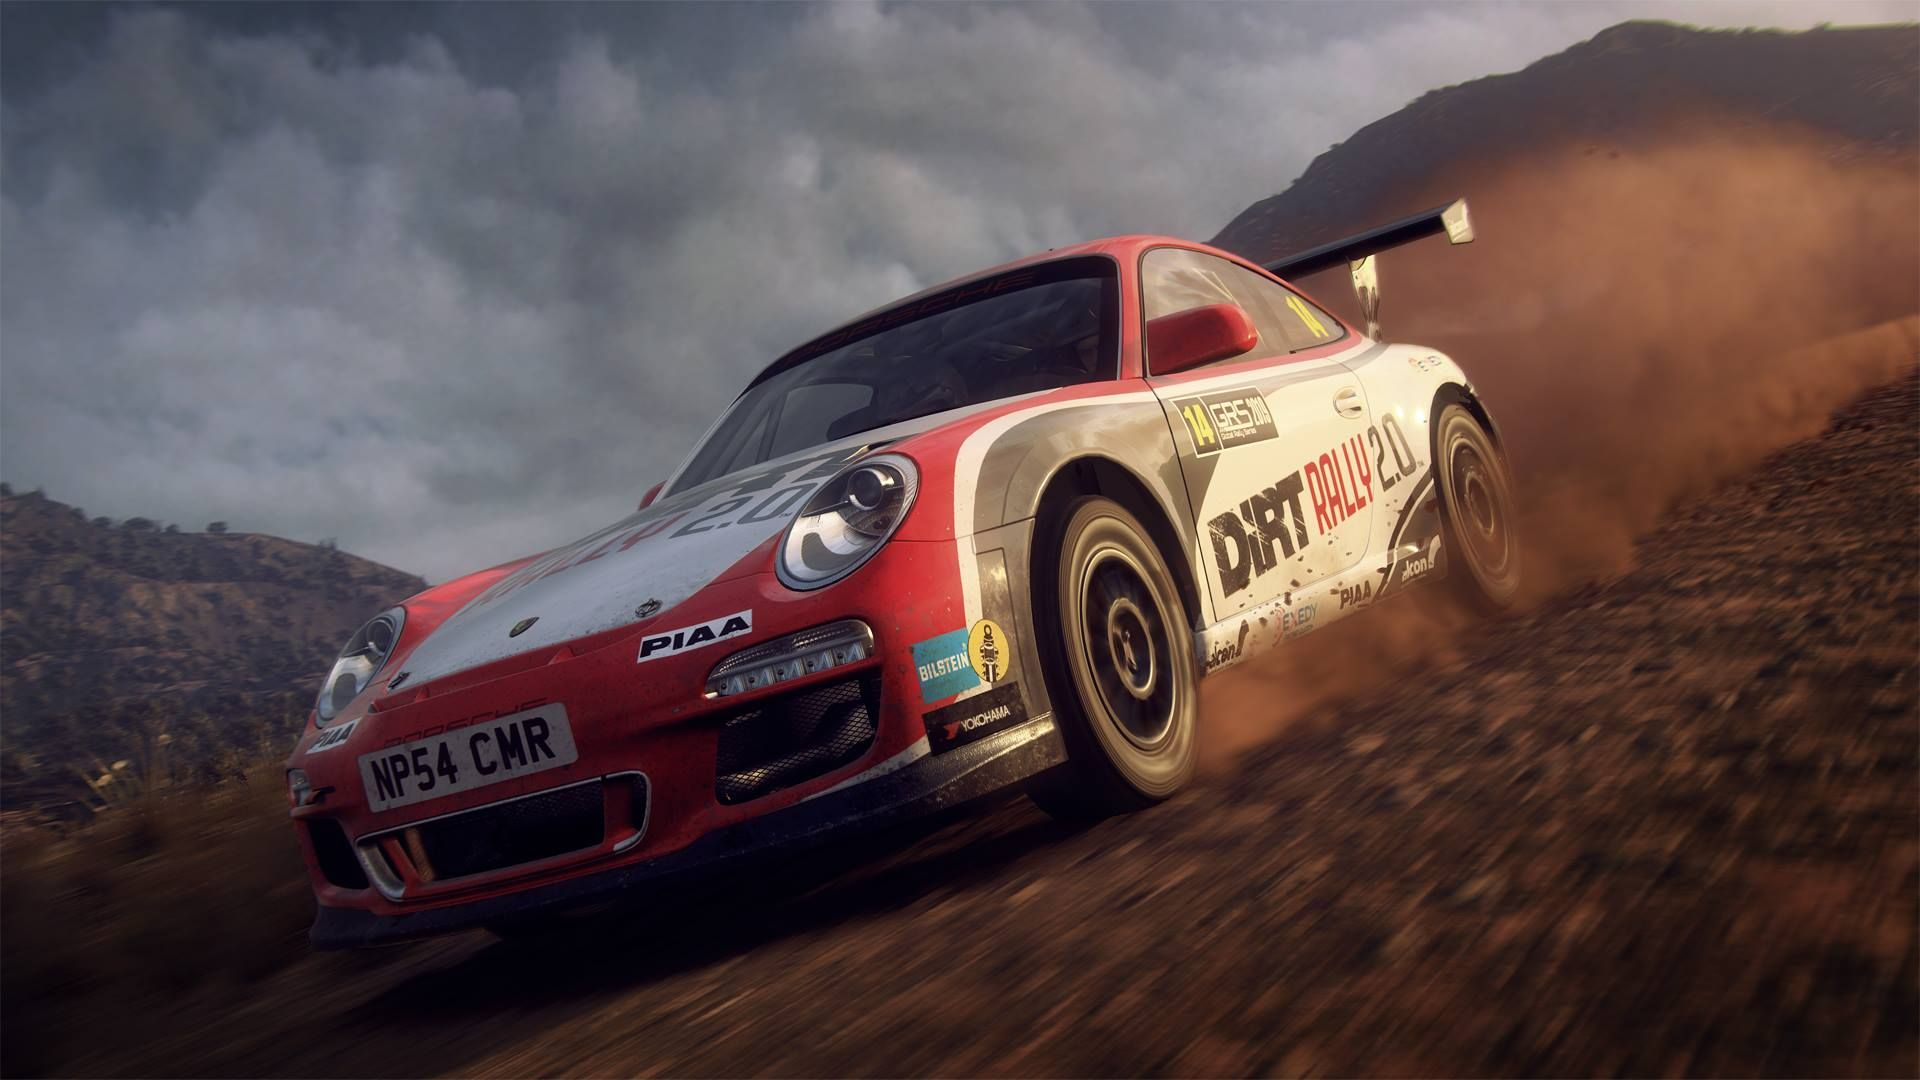 6 Racing Video Games To Make Quarantine Fly By